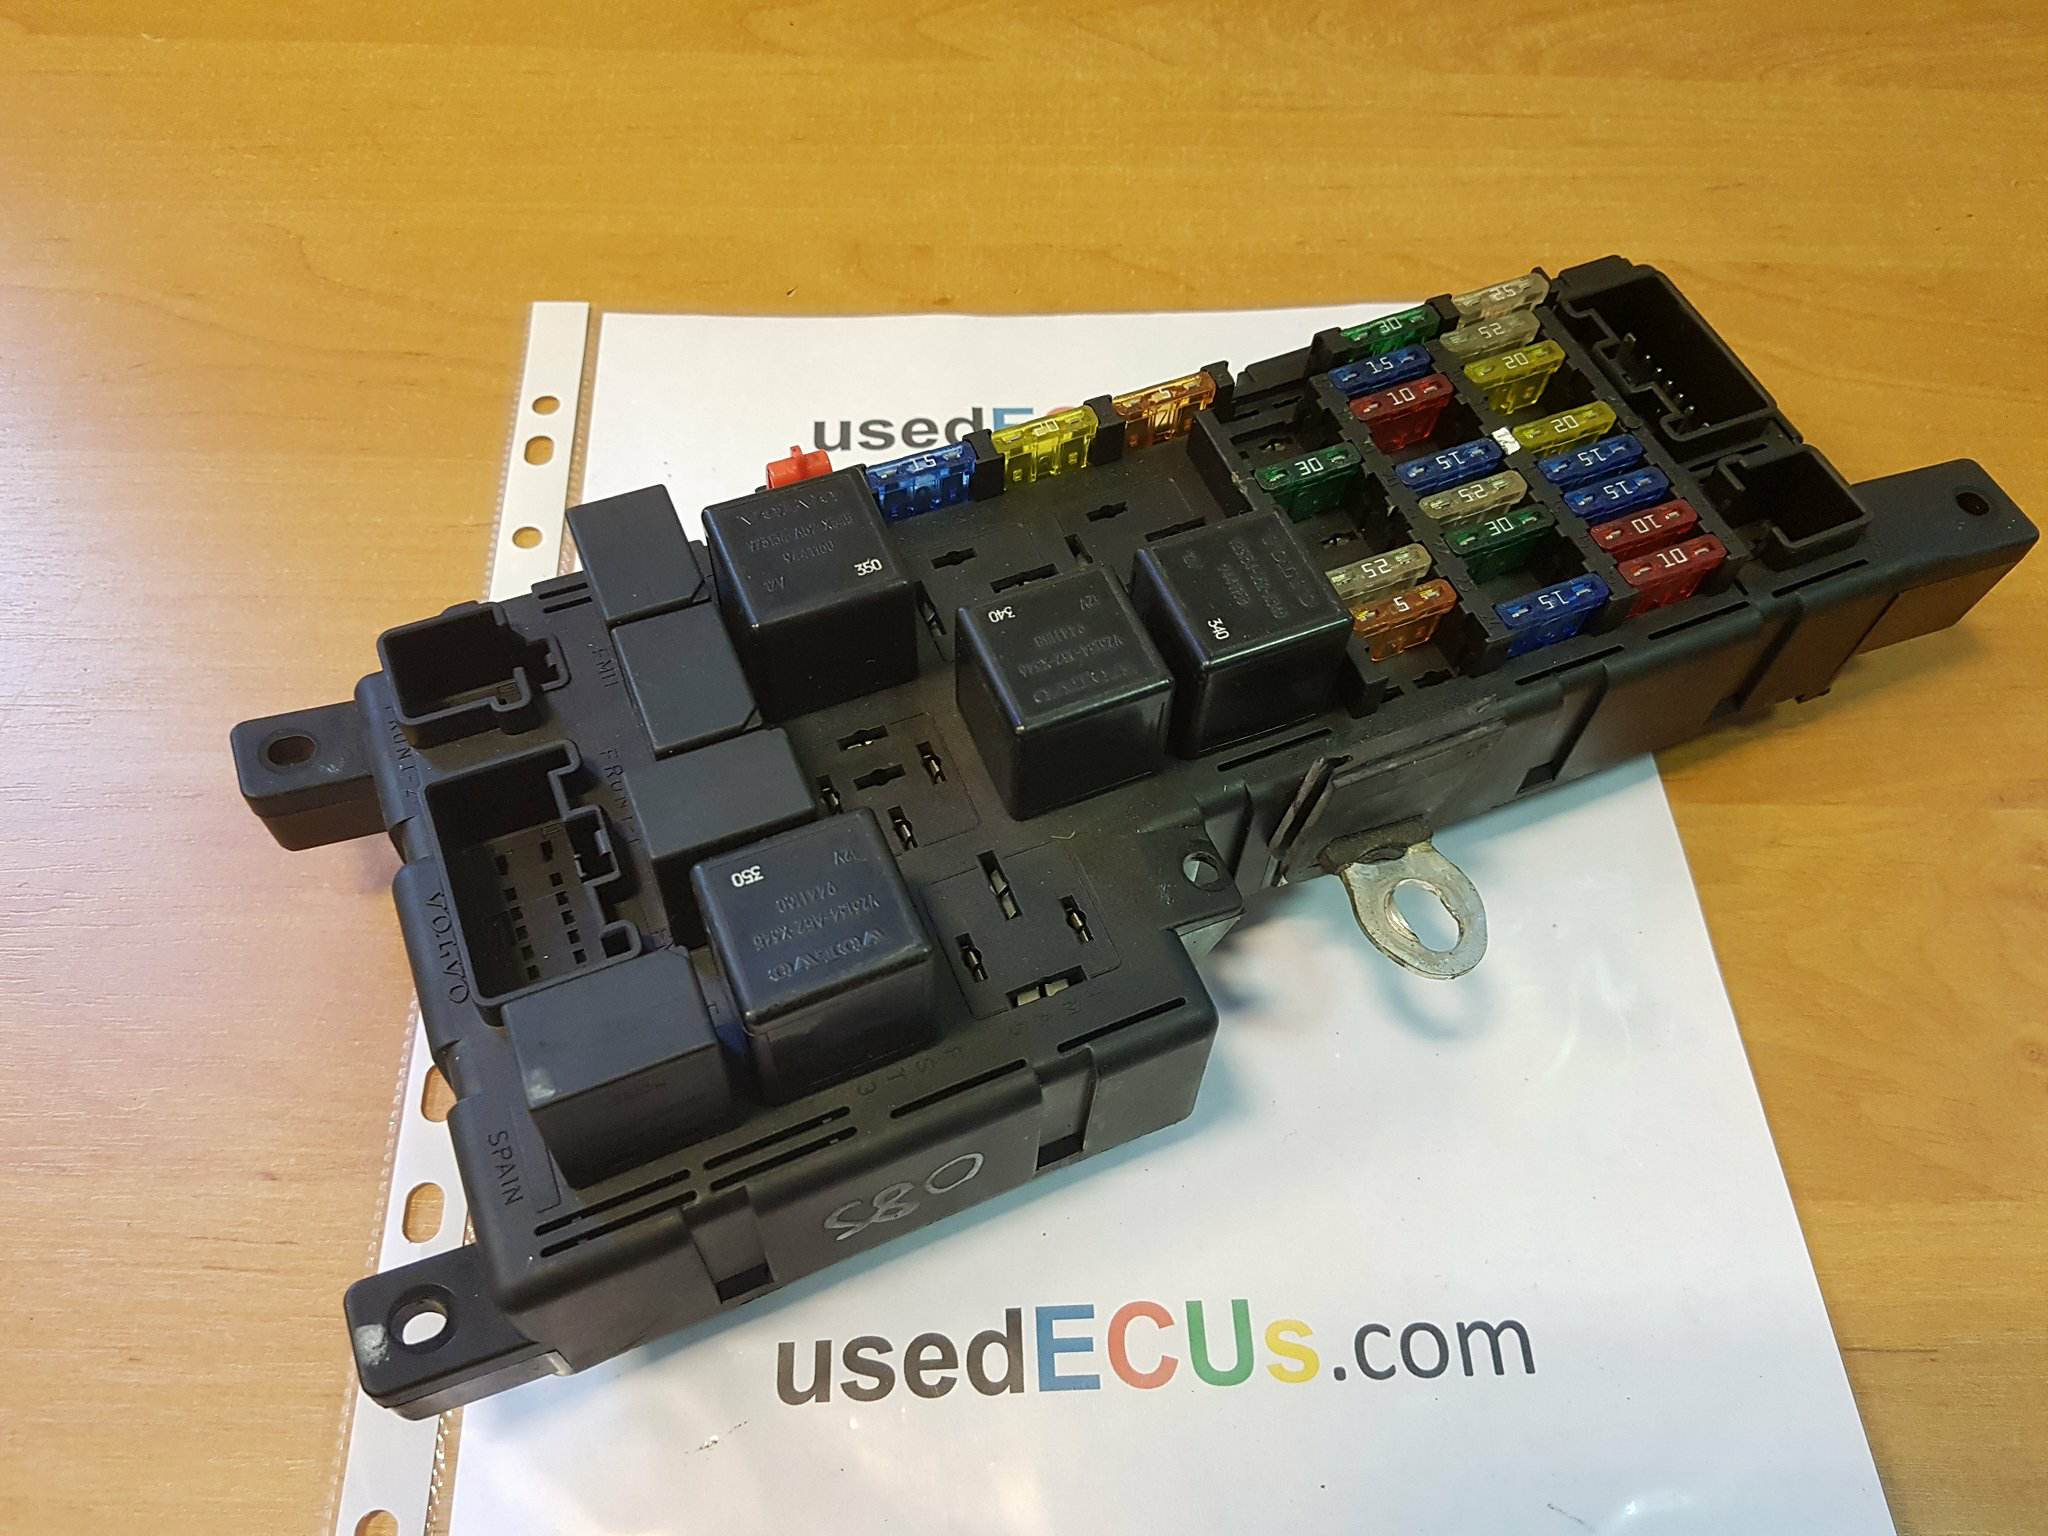 Volvo External Fuse Box Wiring Schematics Diagram 2011 S60 V70 2001 Mk2 Under Bonnet Engine Bay Saturn